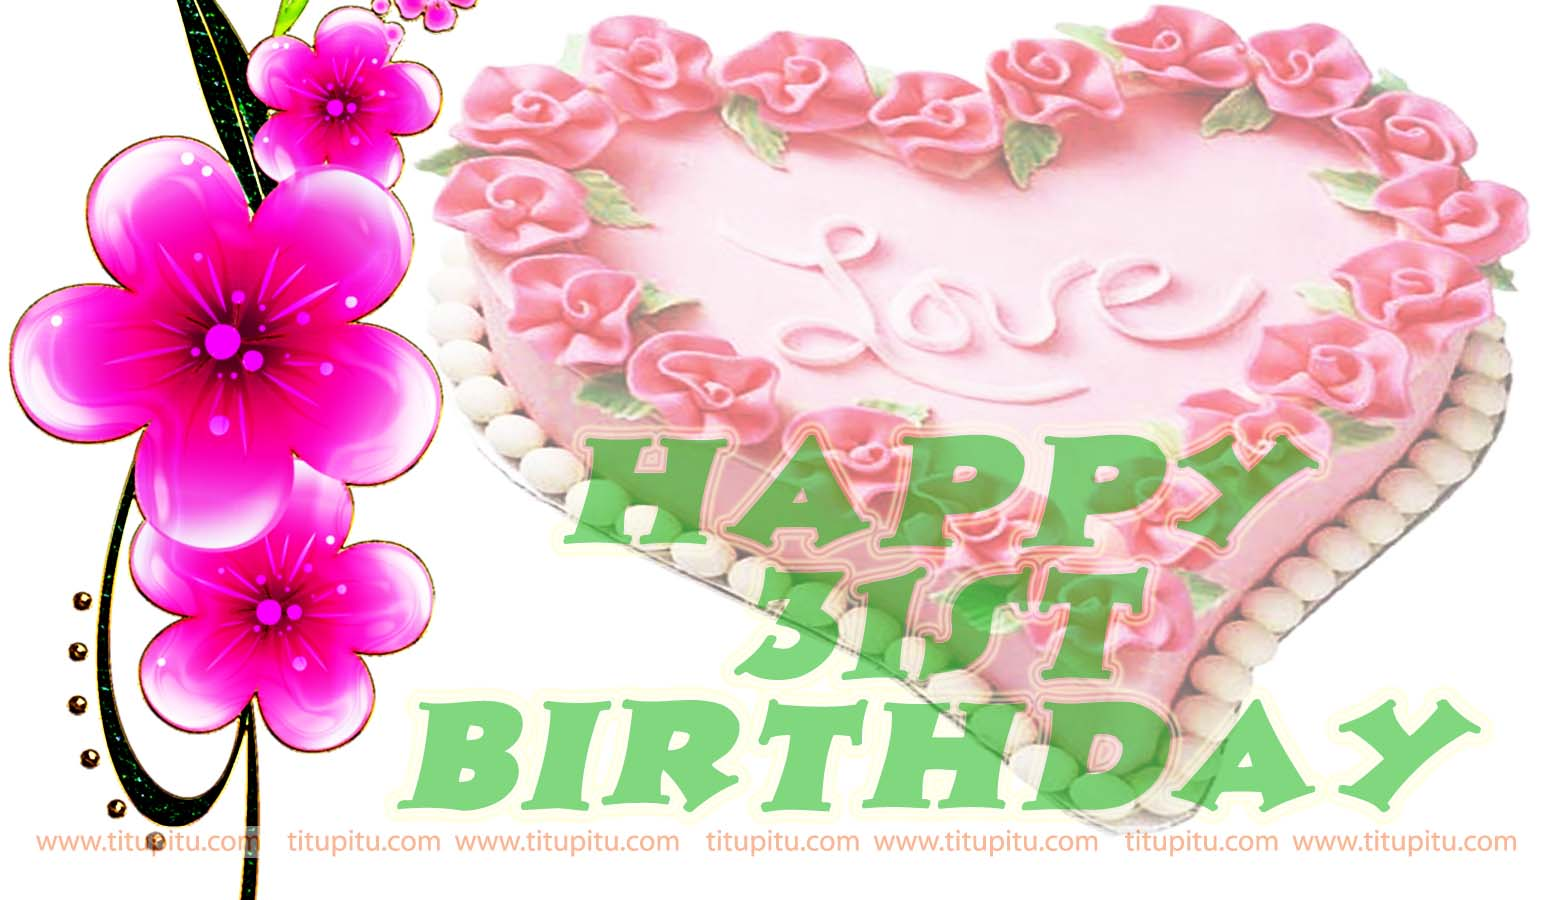 31st Birthday Wishes Images And Sms Haryanvi Makhol Happy 31st Birthday Wishes